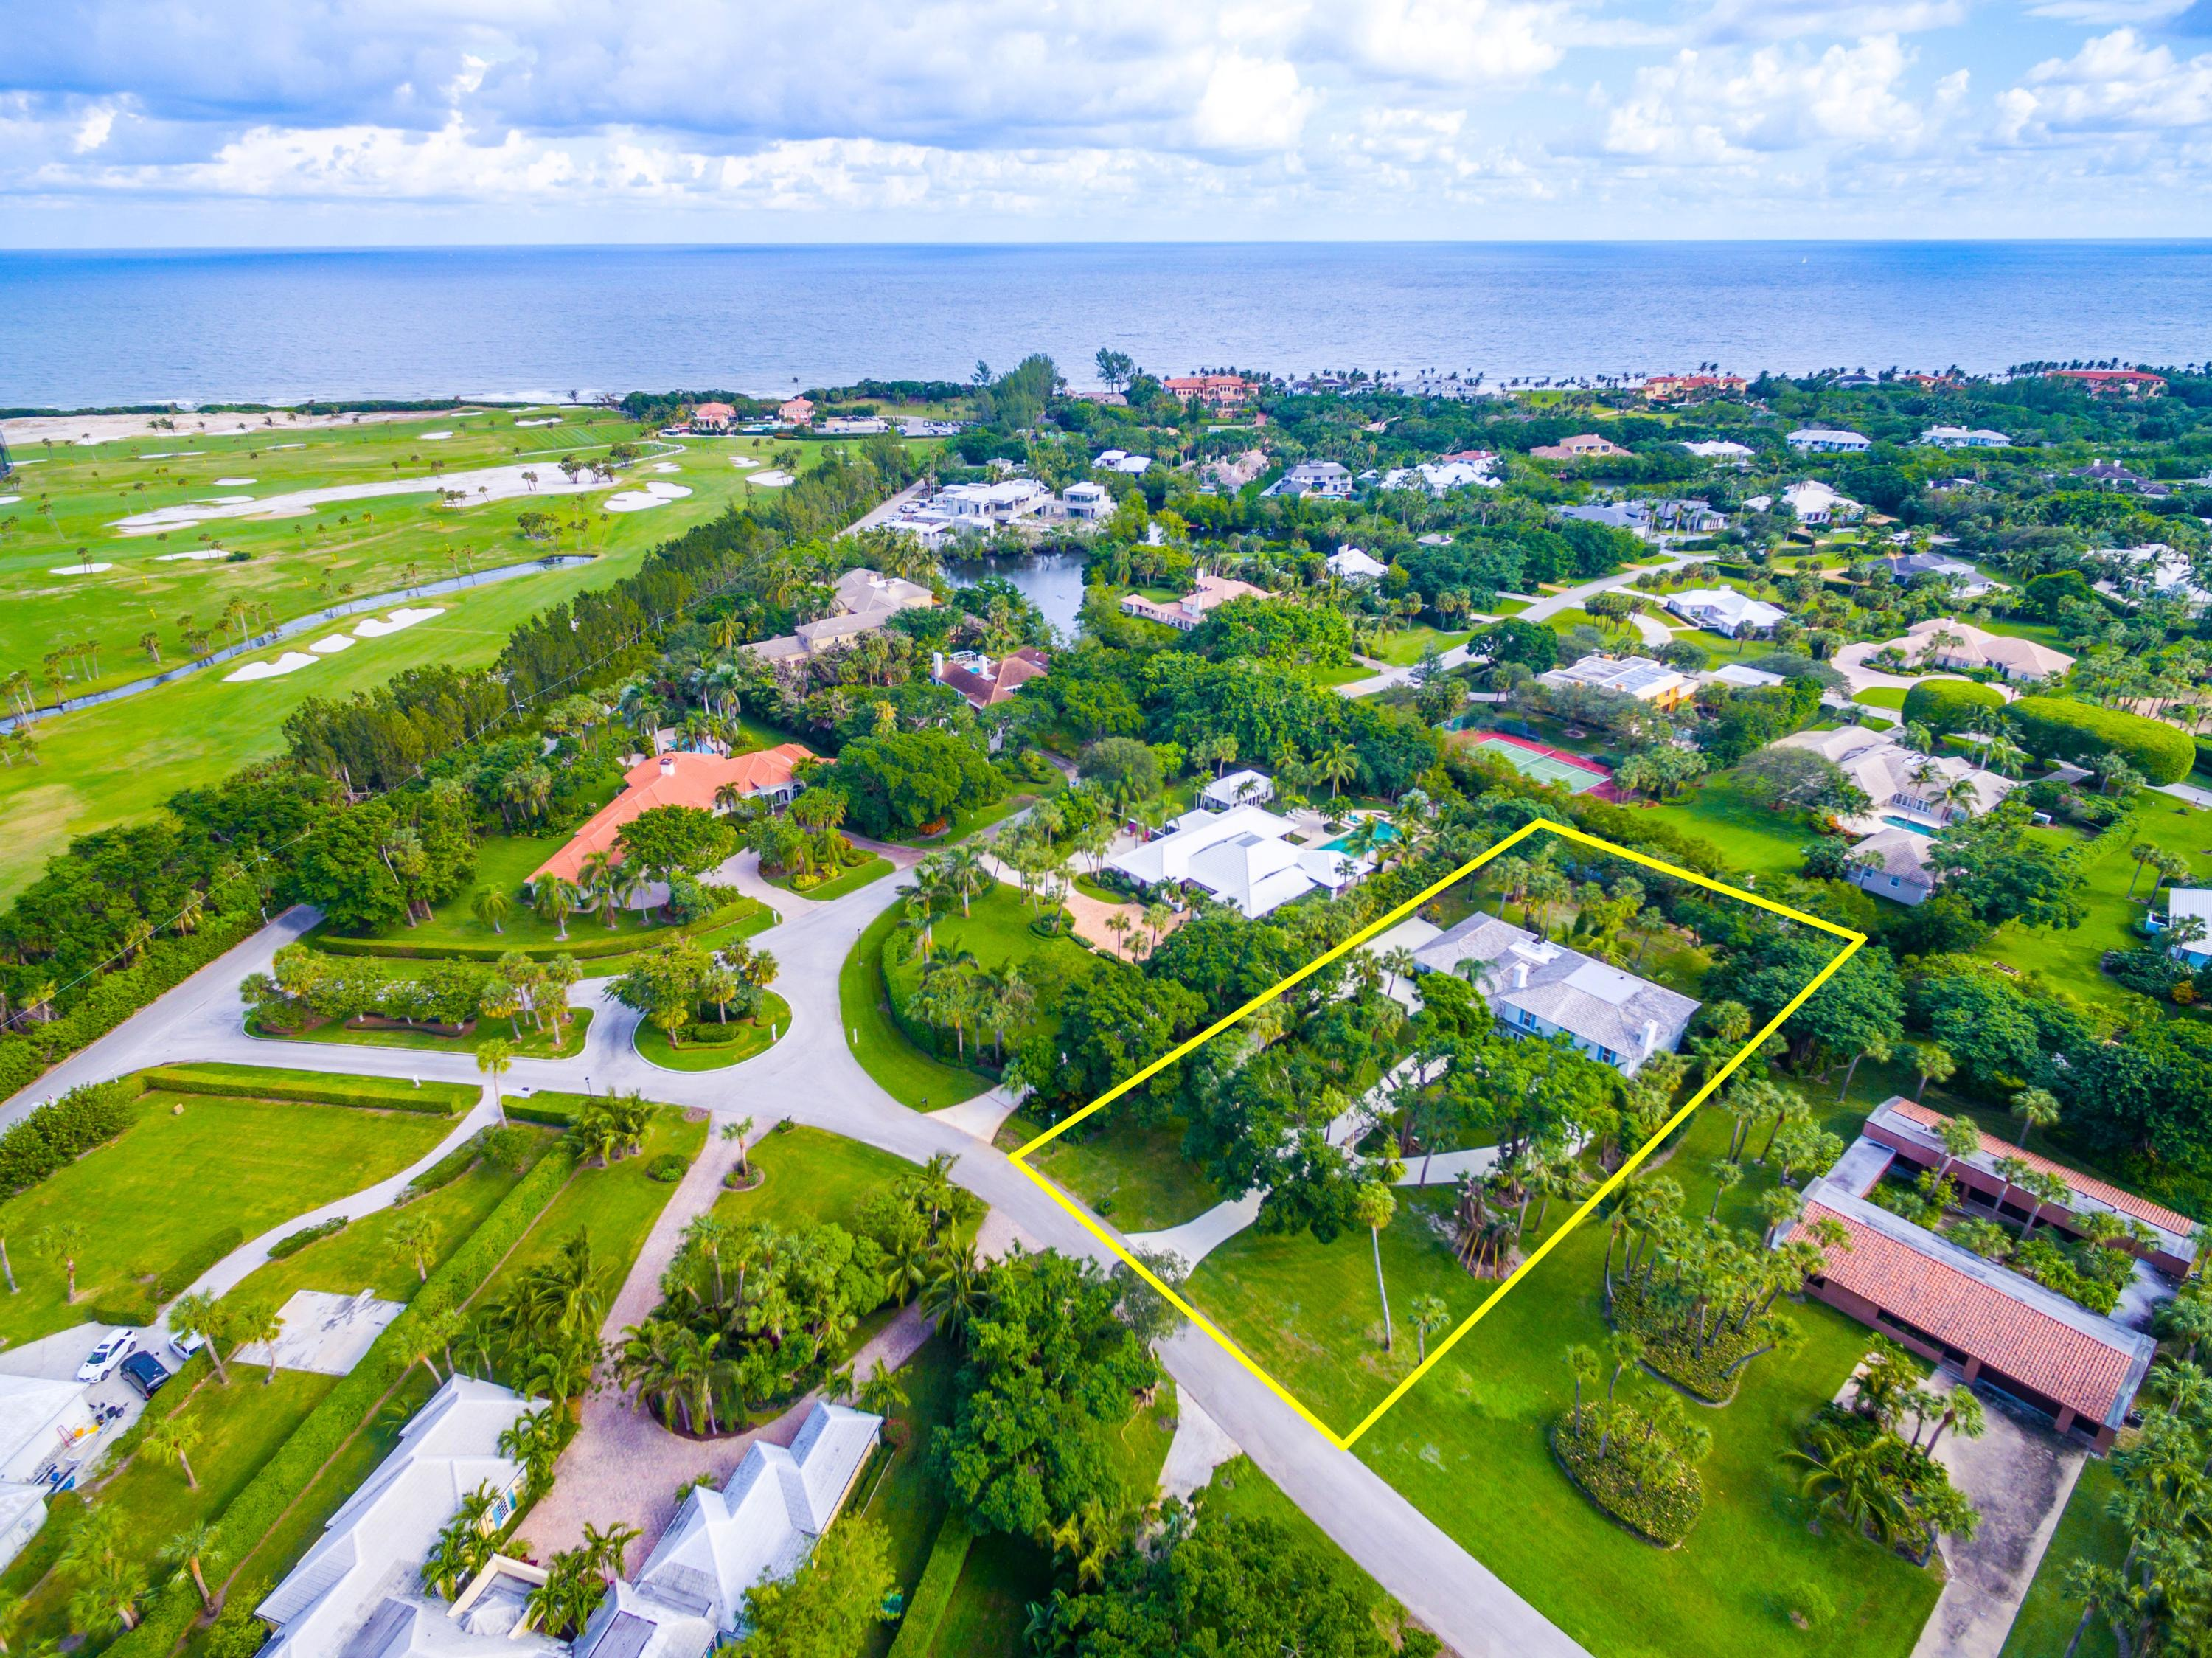 12400 Plantation Lane, North Palm Beach, Florida 33408, 5 Bedrooms Bedrooms, ,6 BathroomsBathrooms,A,Single family,Plantation,RX-10398647